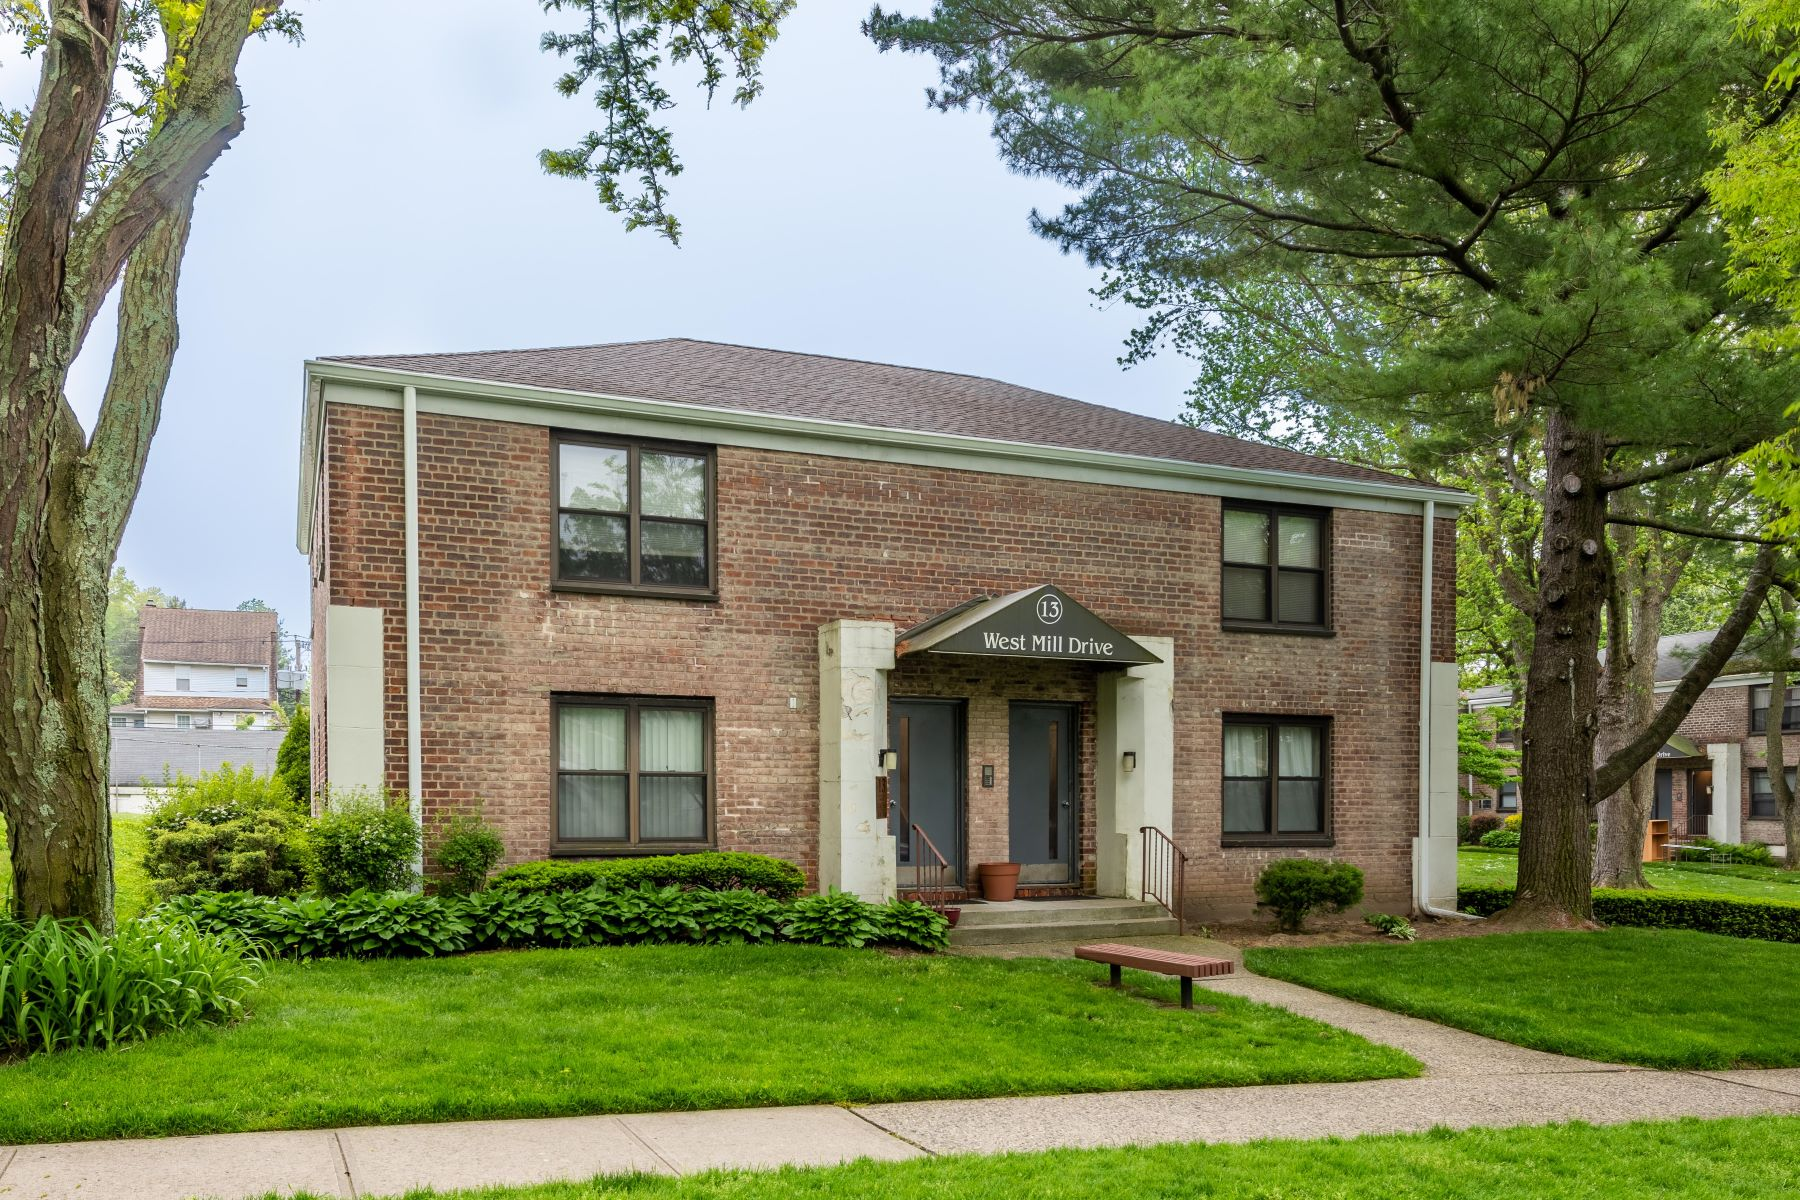 Co-op Properties for Sale at Great Neck 13 West Mill Drive , 4A Great Neck, New York 11021 United States